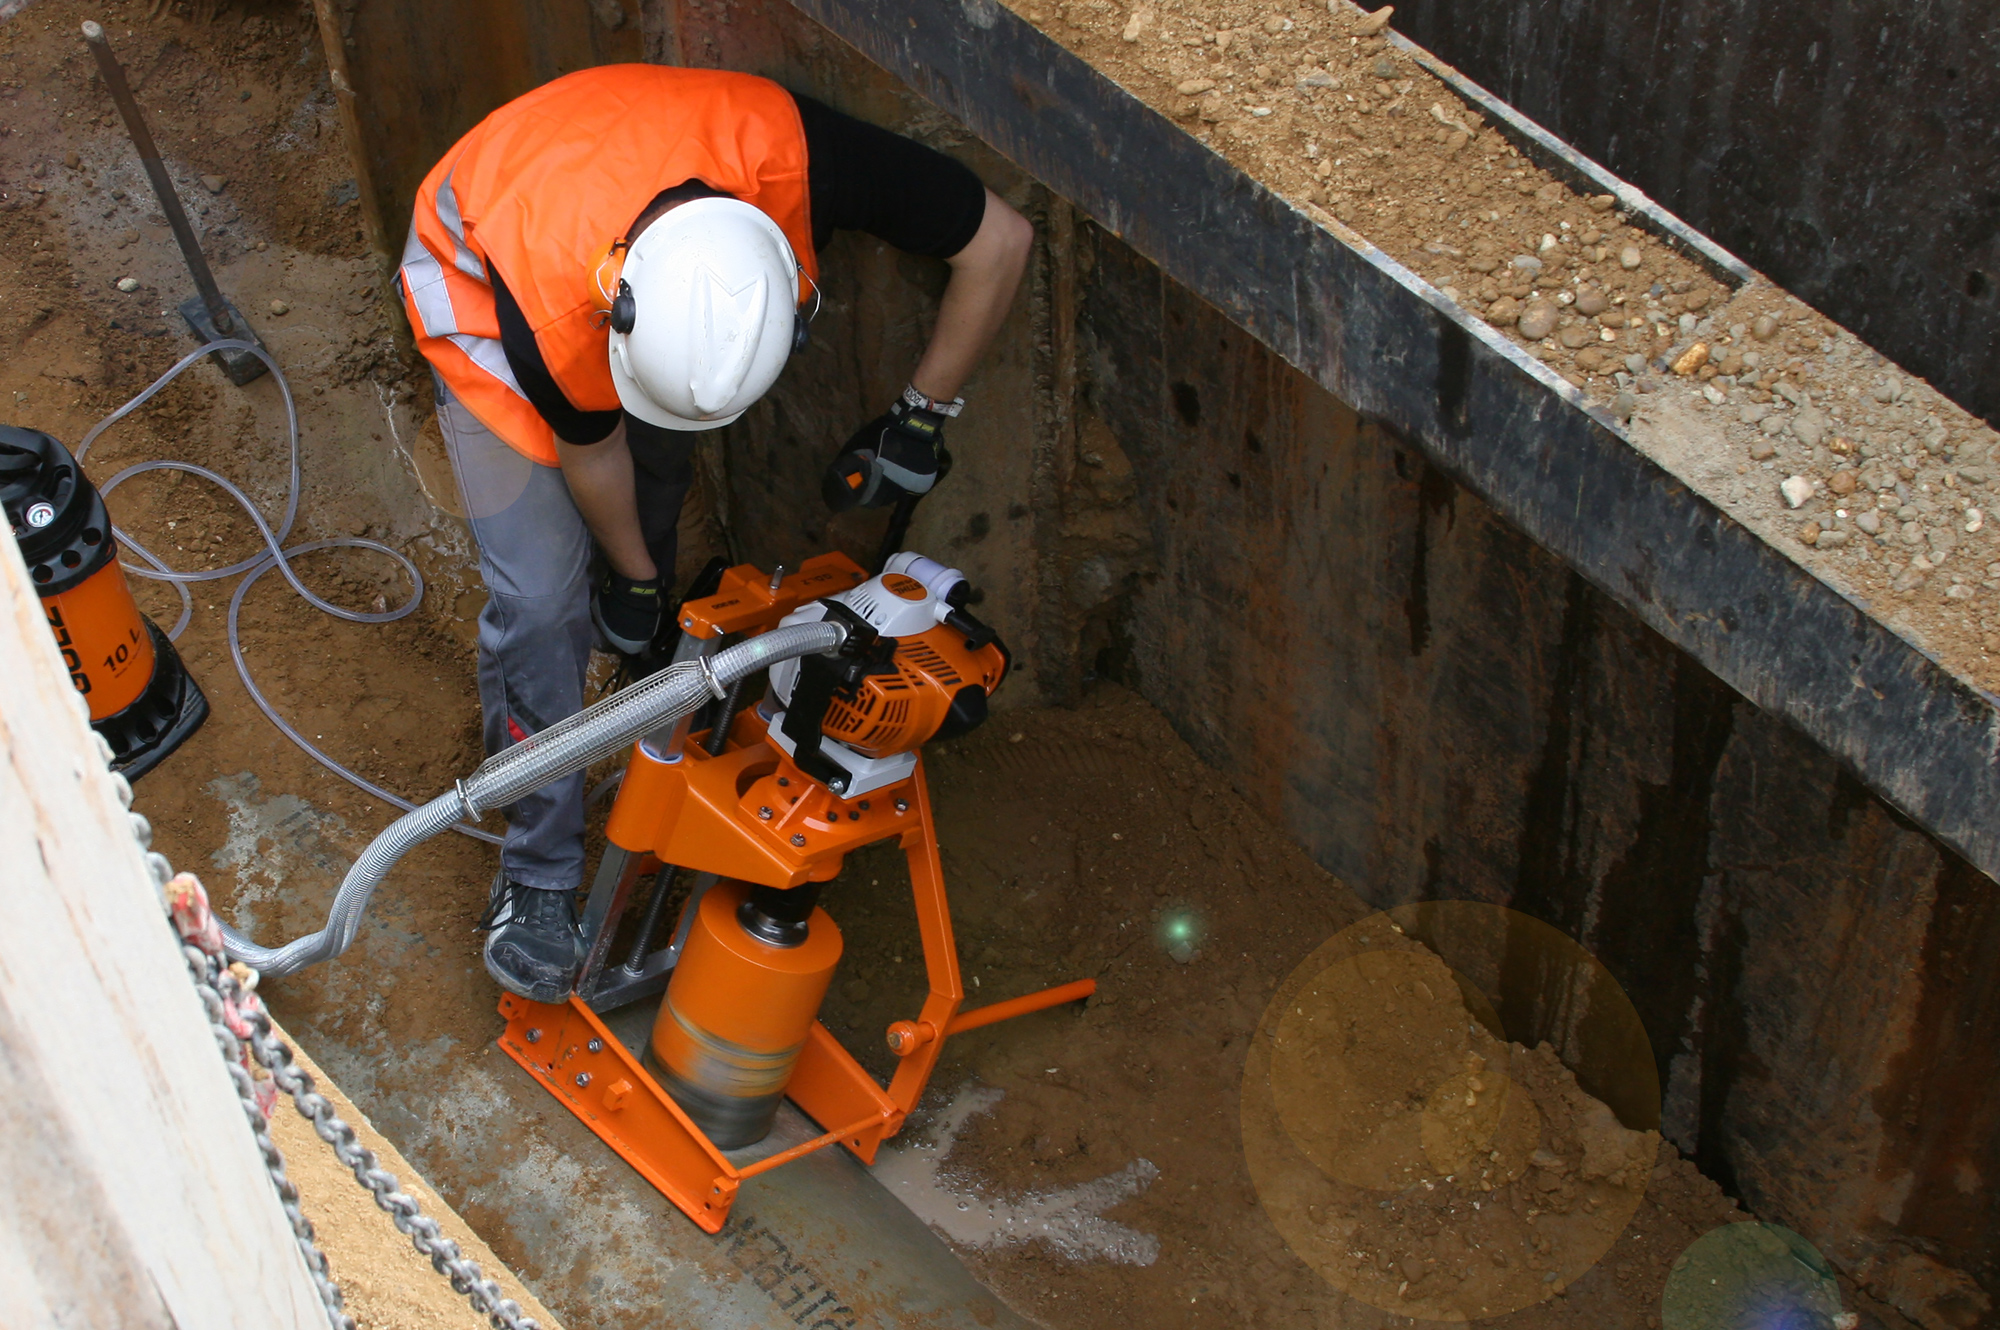 Golz KB 350 - The original and most modern solution in pipe and sewage drilling